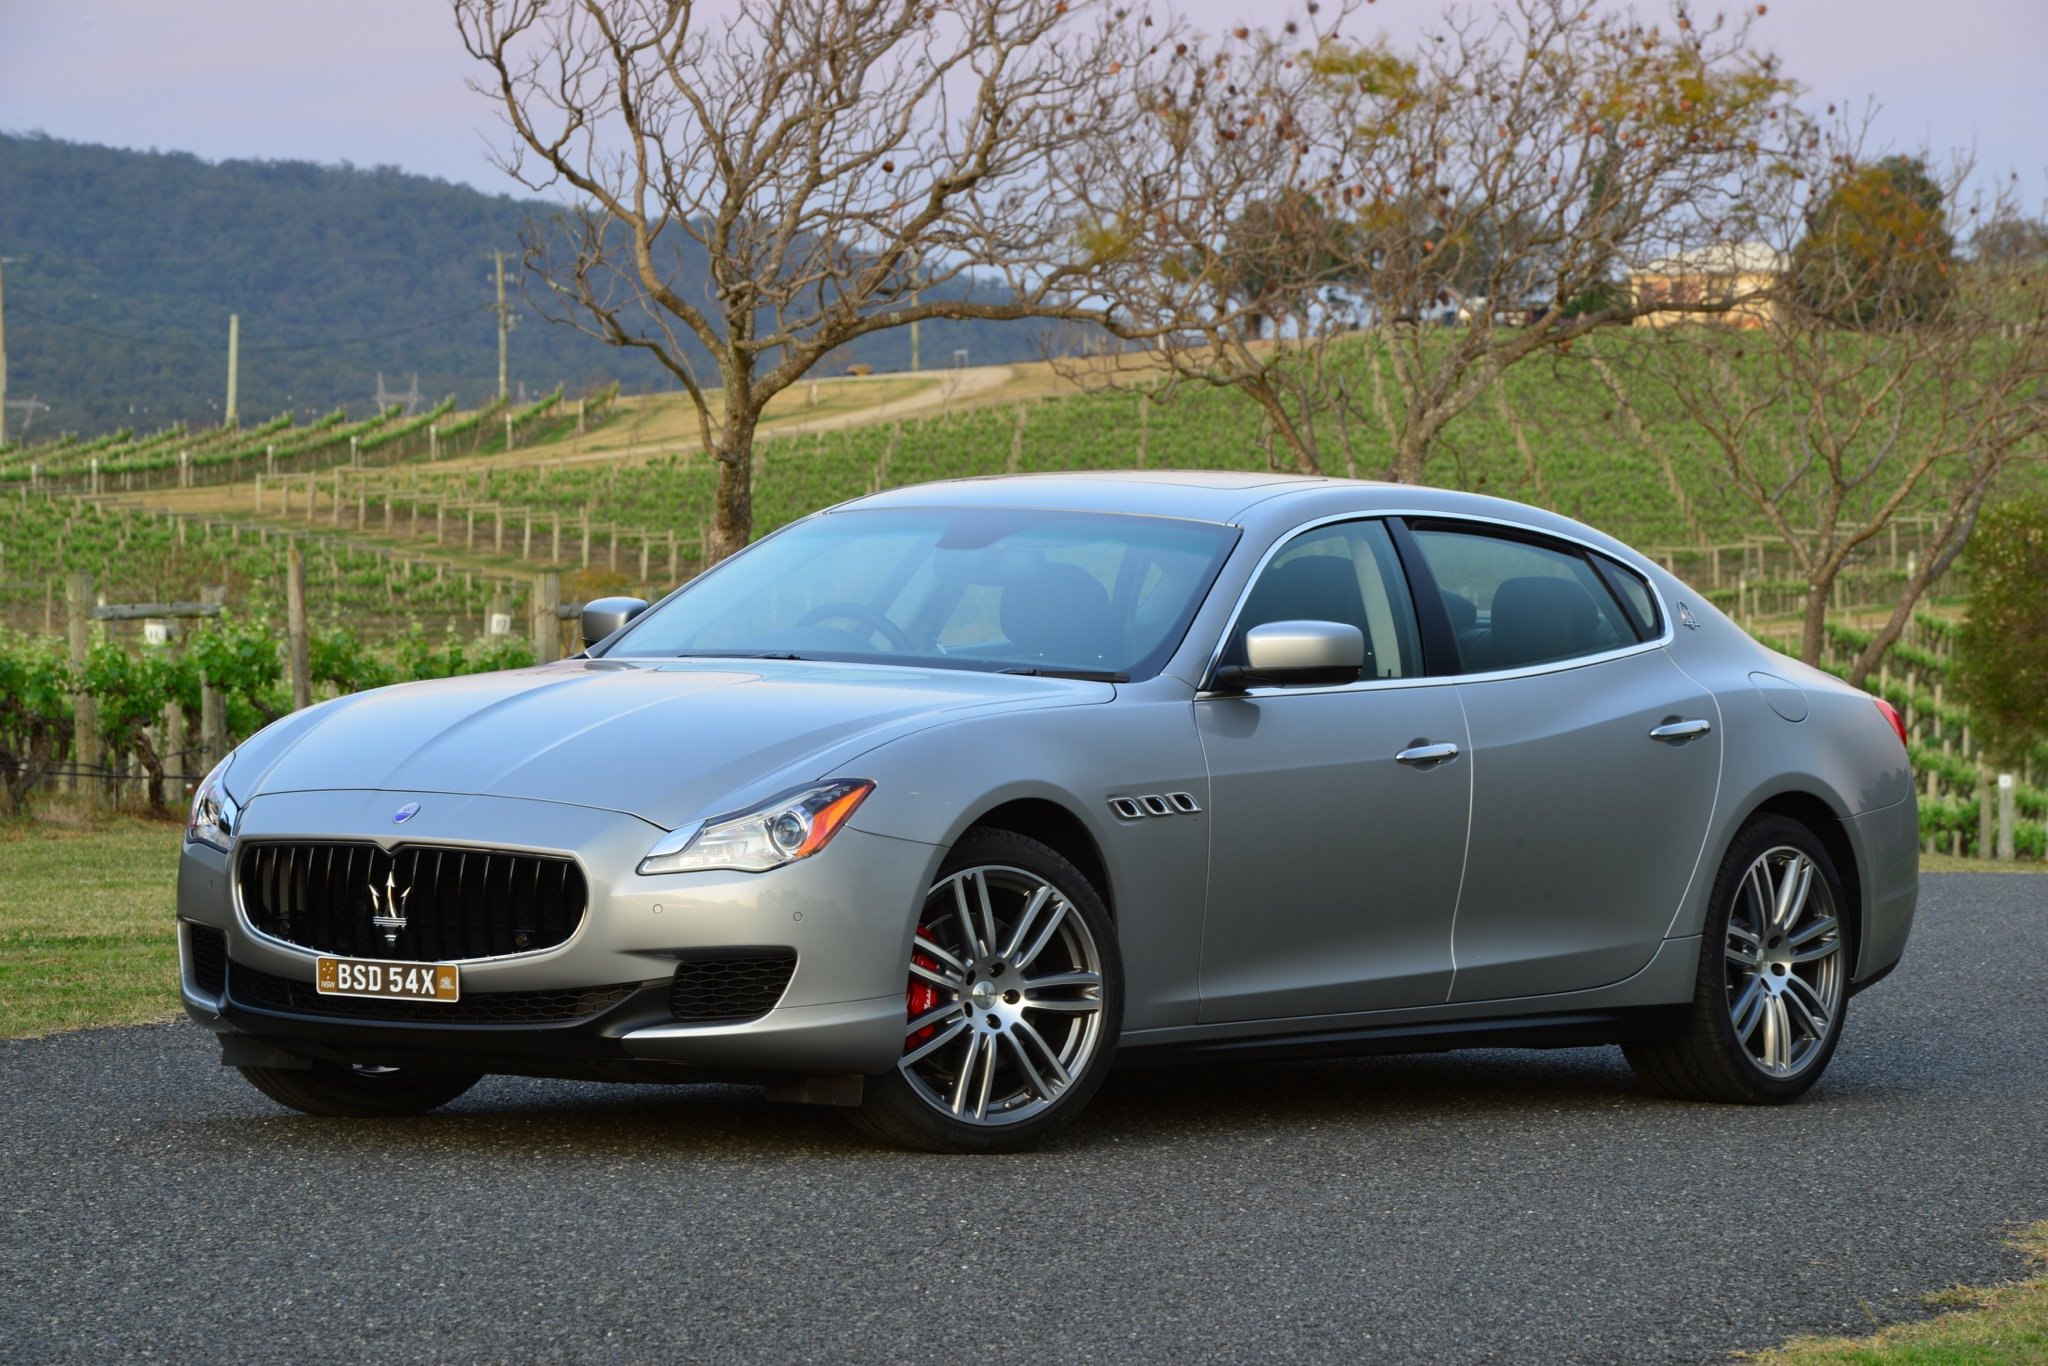 2016 maserati quattroporte review caradvice. Black Bedroom Furniture Sets. Home Design Ideas